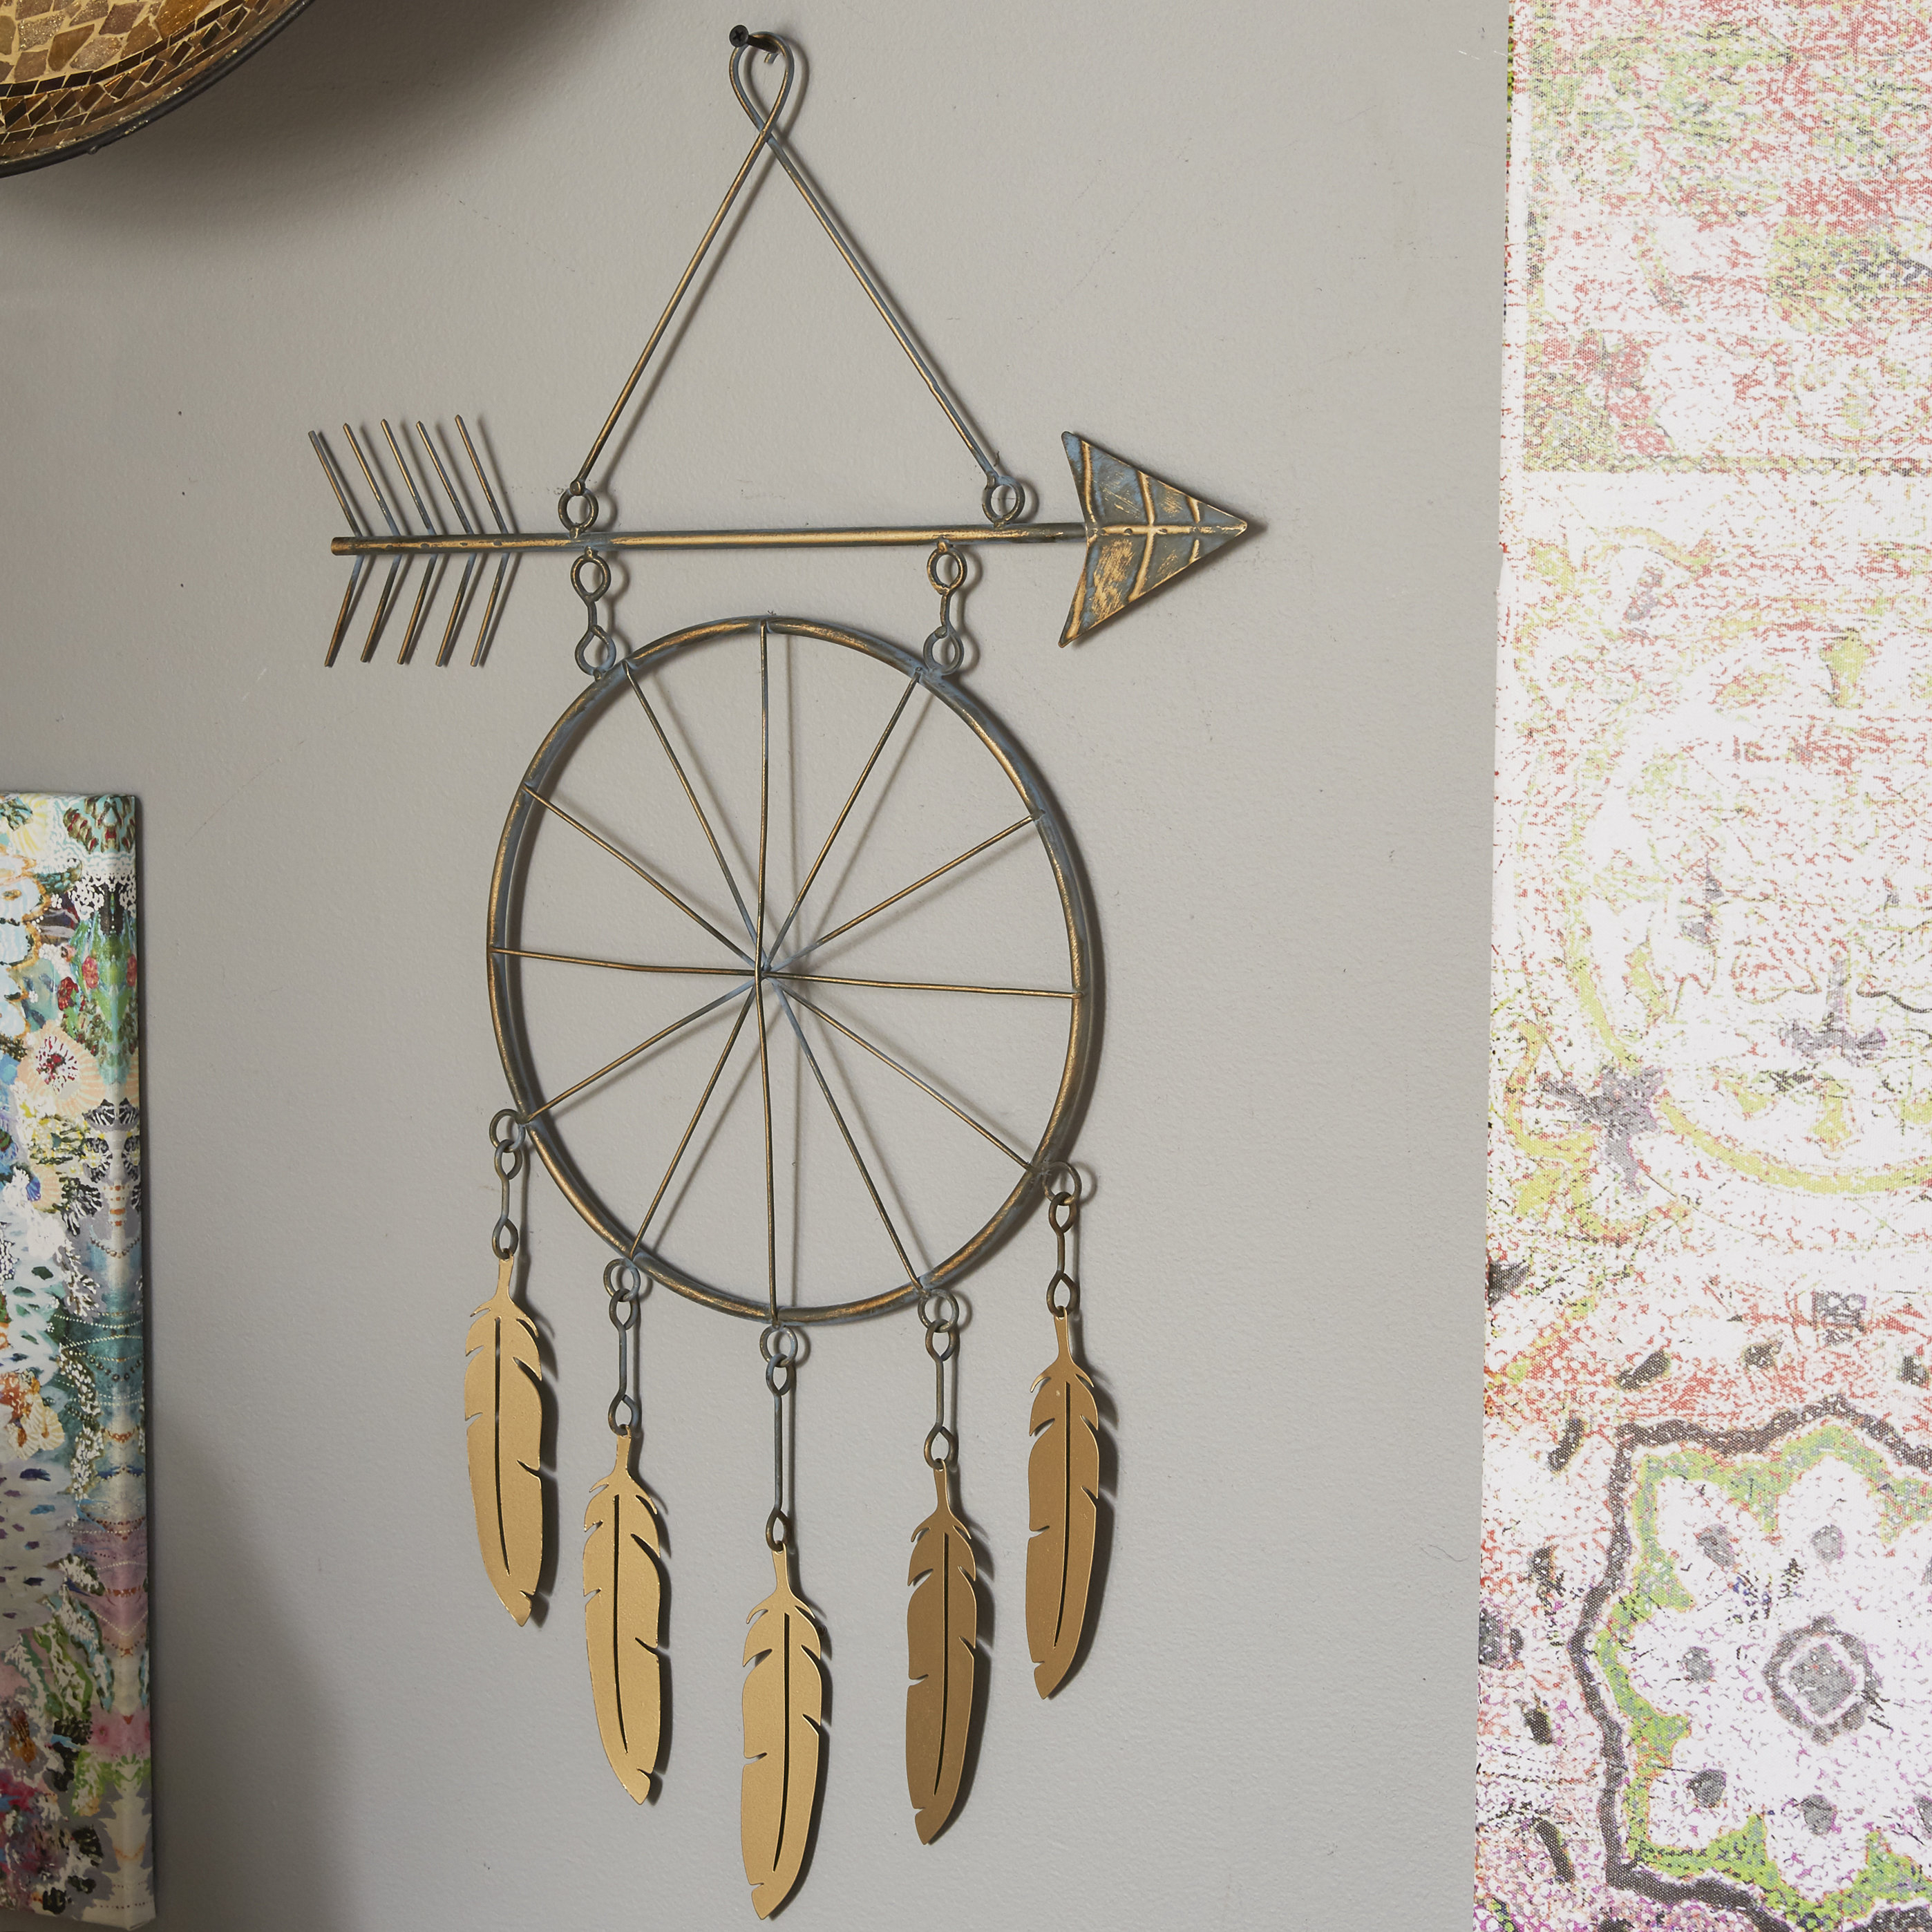 Joss & Main intended for Brown Metal Tribal Arrow Wall Decor